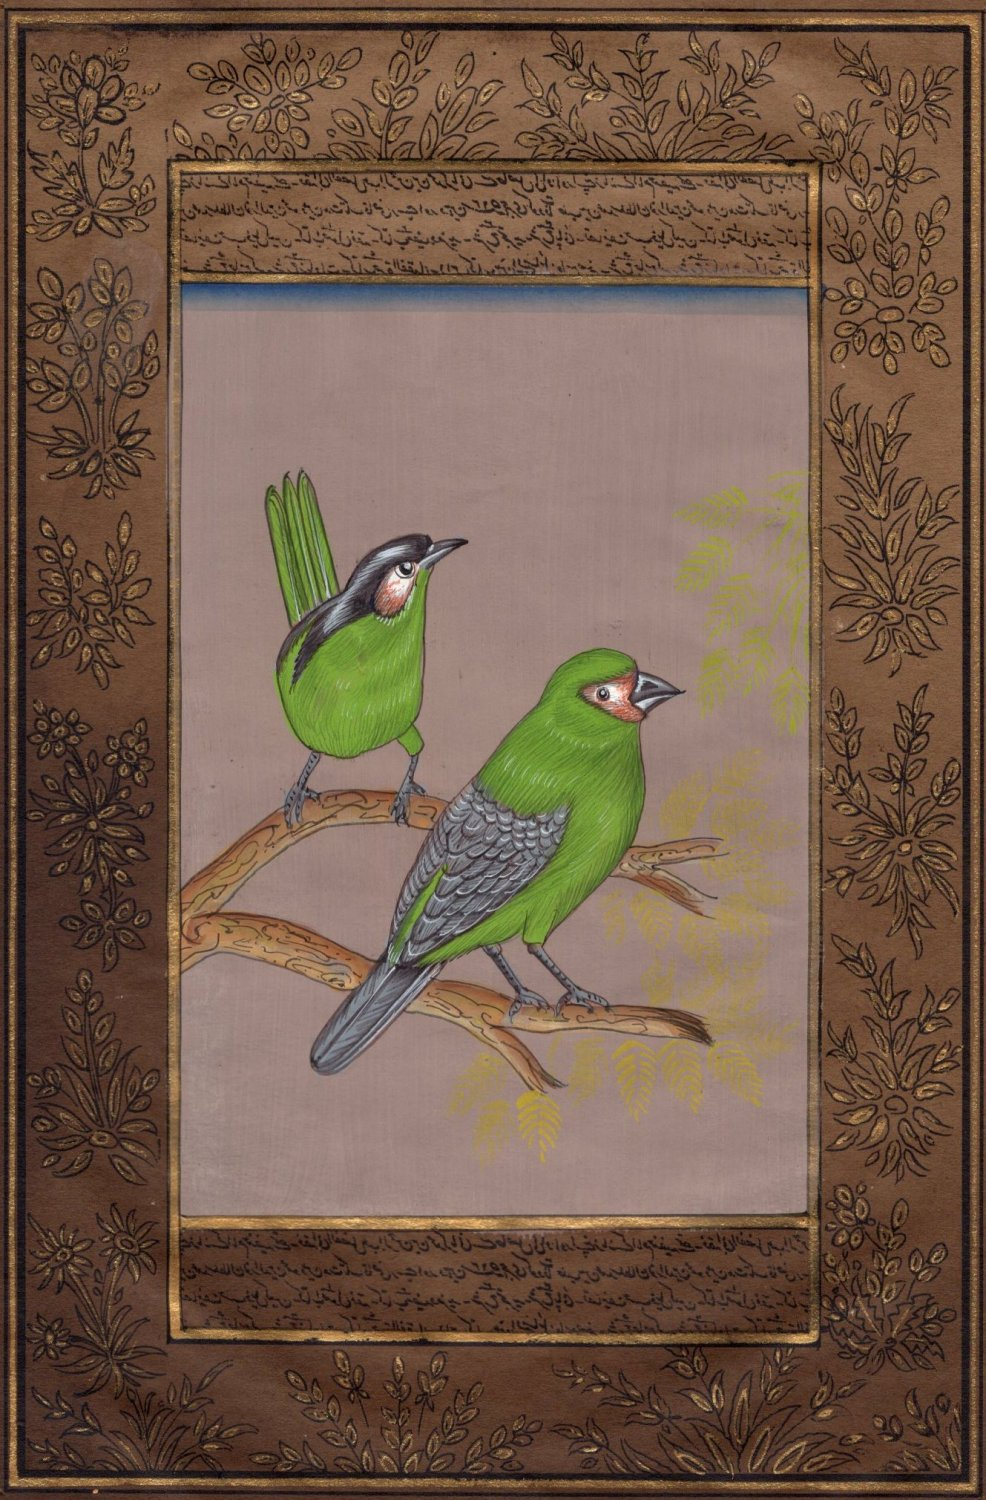 Green Robin Painting Handmade Indian Nature Bird Ornithology Miniature Art